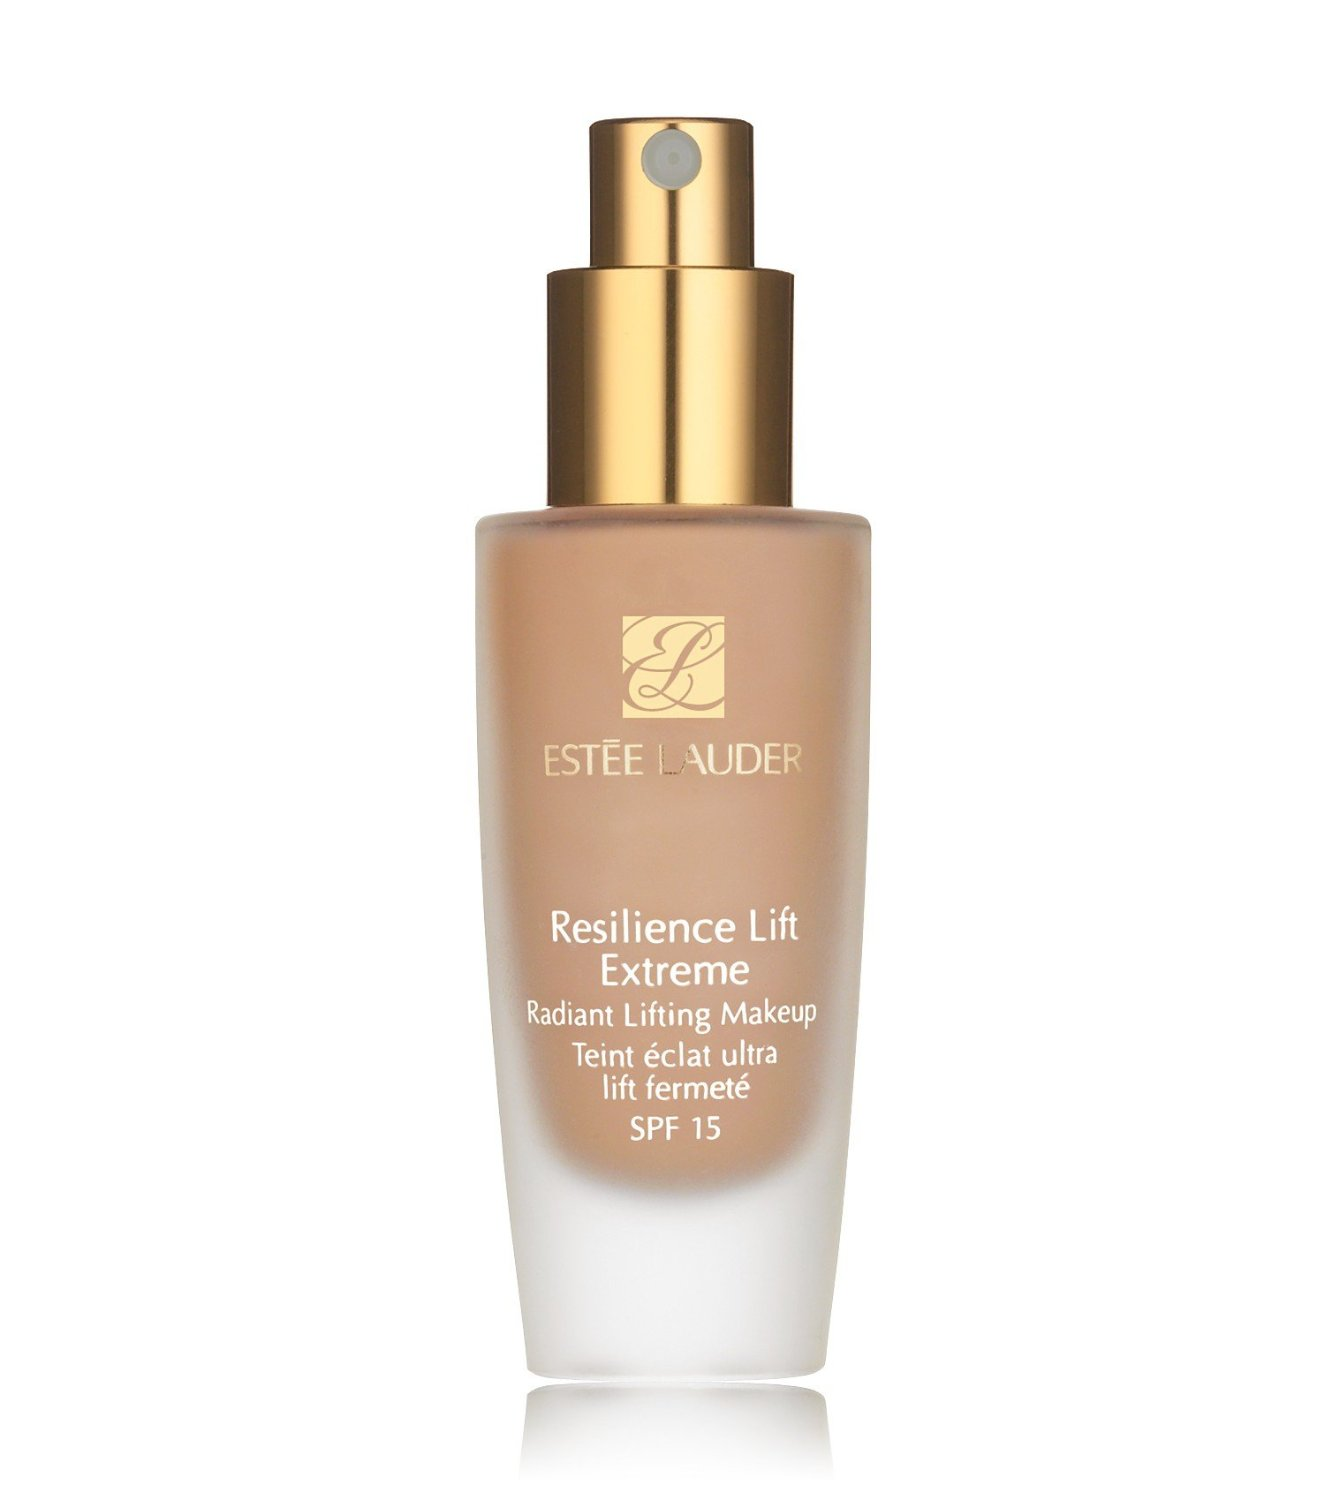 Estee Lauder Resilience Lift Extreme Radiant Lifting Makeup SPF 15 18 Dawn